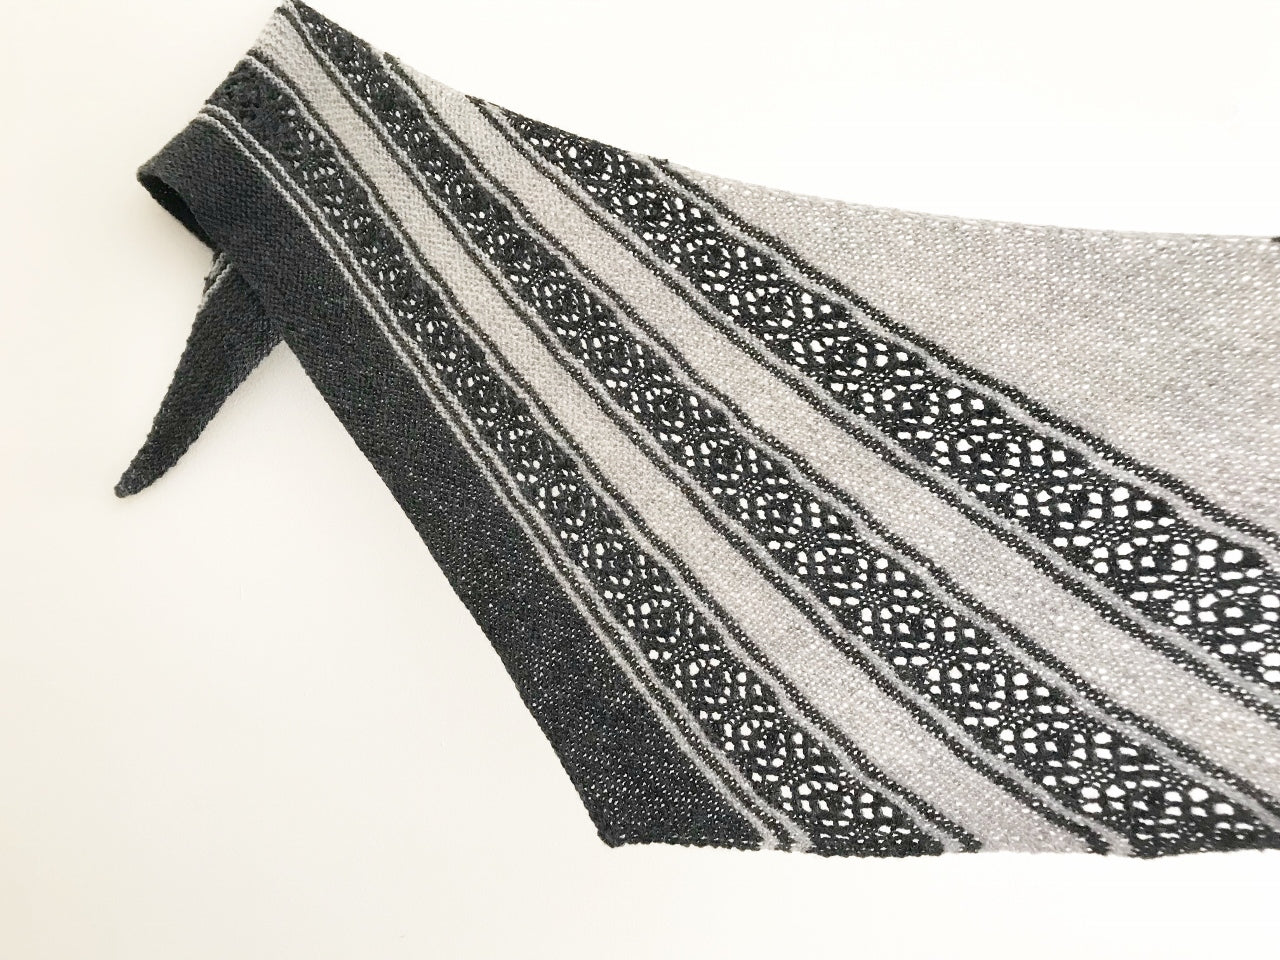 Hematite Shawl by Dominique Trad